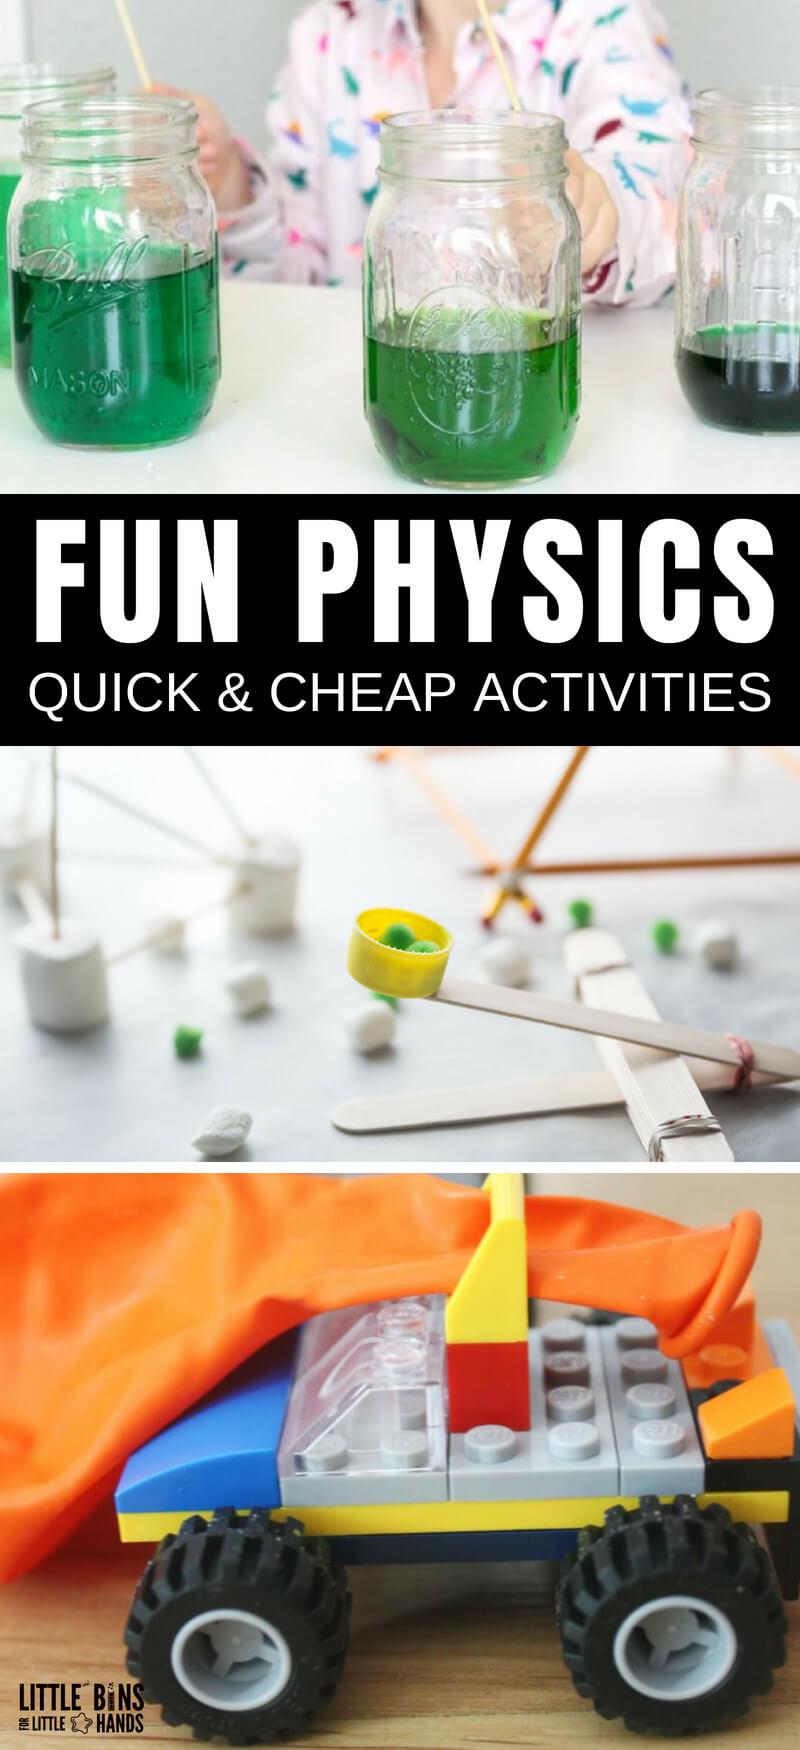 Simple Physics Experiments For Kids | Little Bins for Little